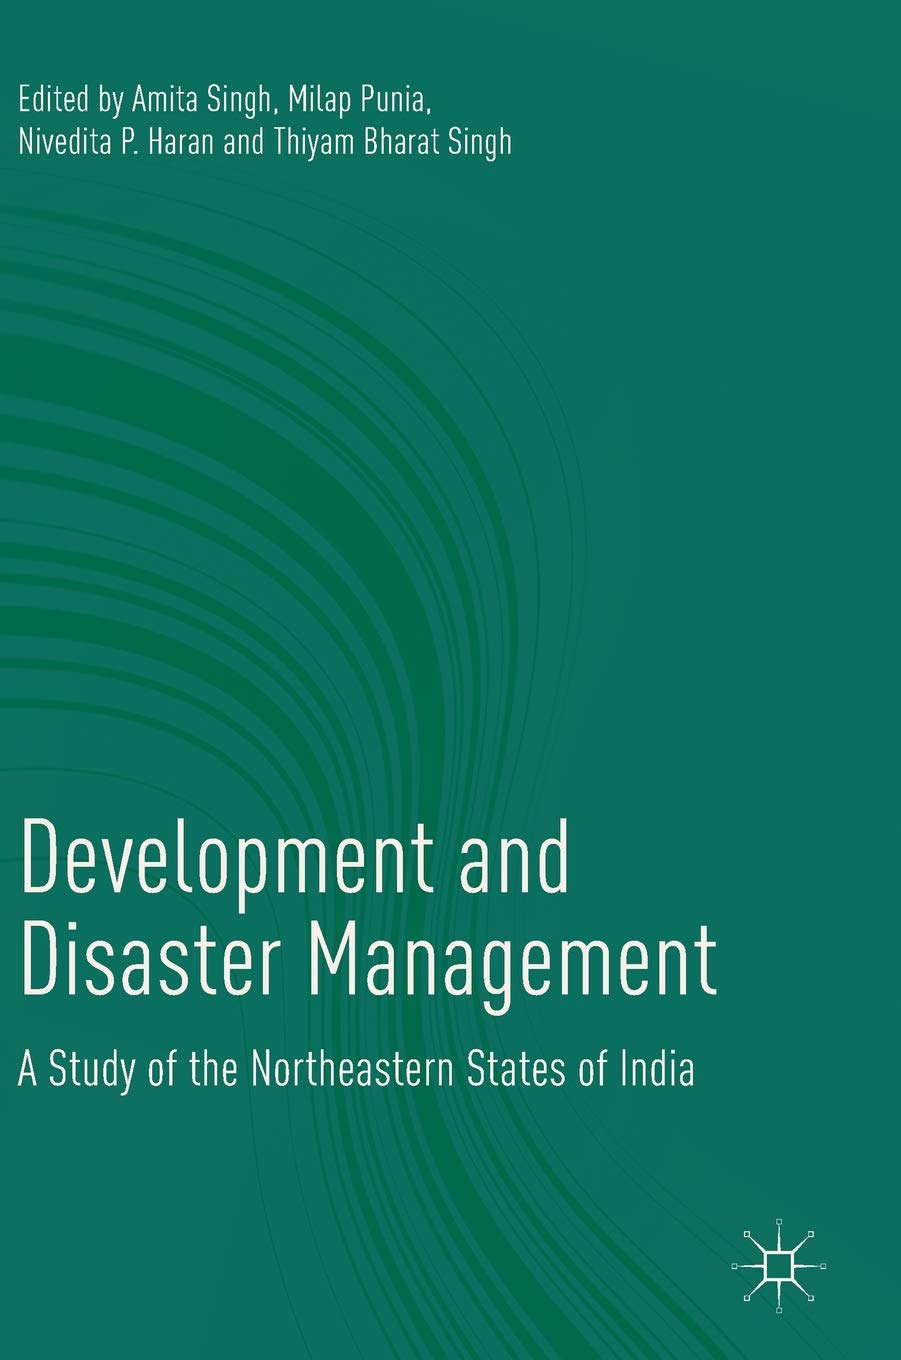 Buy Development and Disaster Management: A Study of the